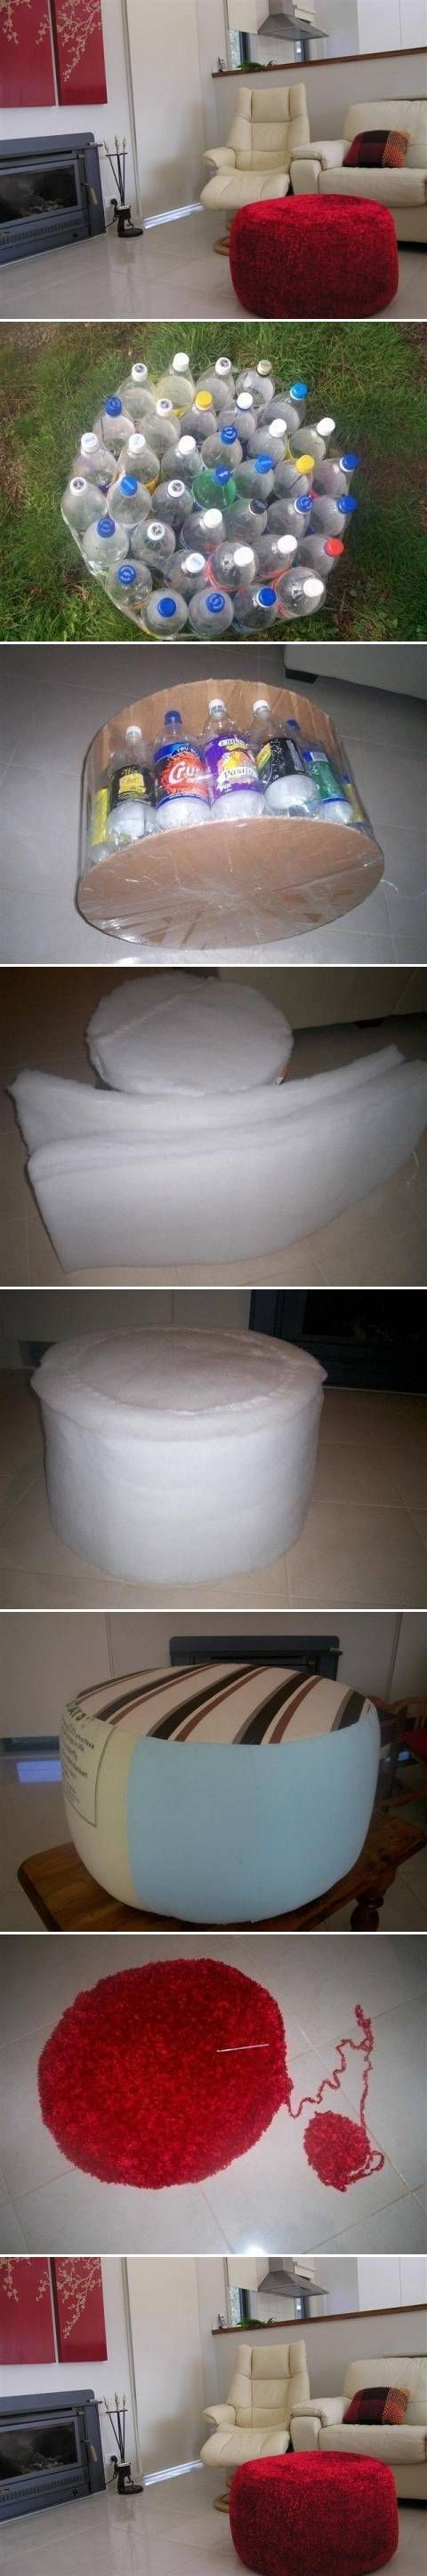 "<input+type=""hidden""+value=""""+data-frizzlyPostContainer=""""+data-frizzlyPostUrl=""http://www.usefuldiy.com/diy-plastic-bottles-ottoman/""+data-frizzlyPostTitle=""DIY+Plastic+Bottles+Ottoman""+data-frizzlyHoverContainer=""""><p>>>>+Craft+Tutorials+More+Free+Instructions+Free+Tutorials+More+Craft+Tutorials</p>"